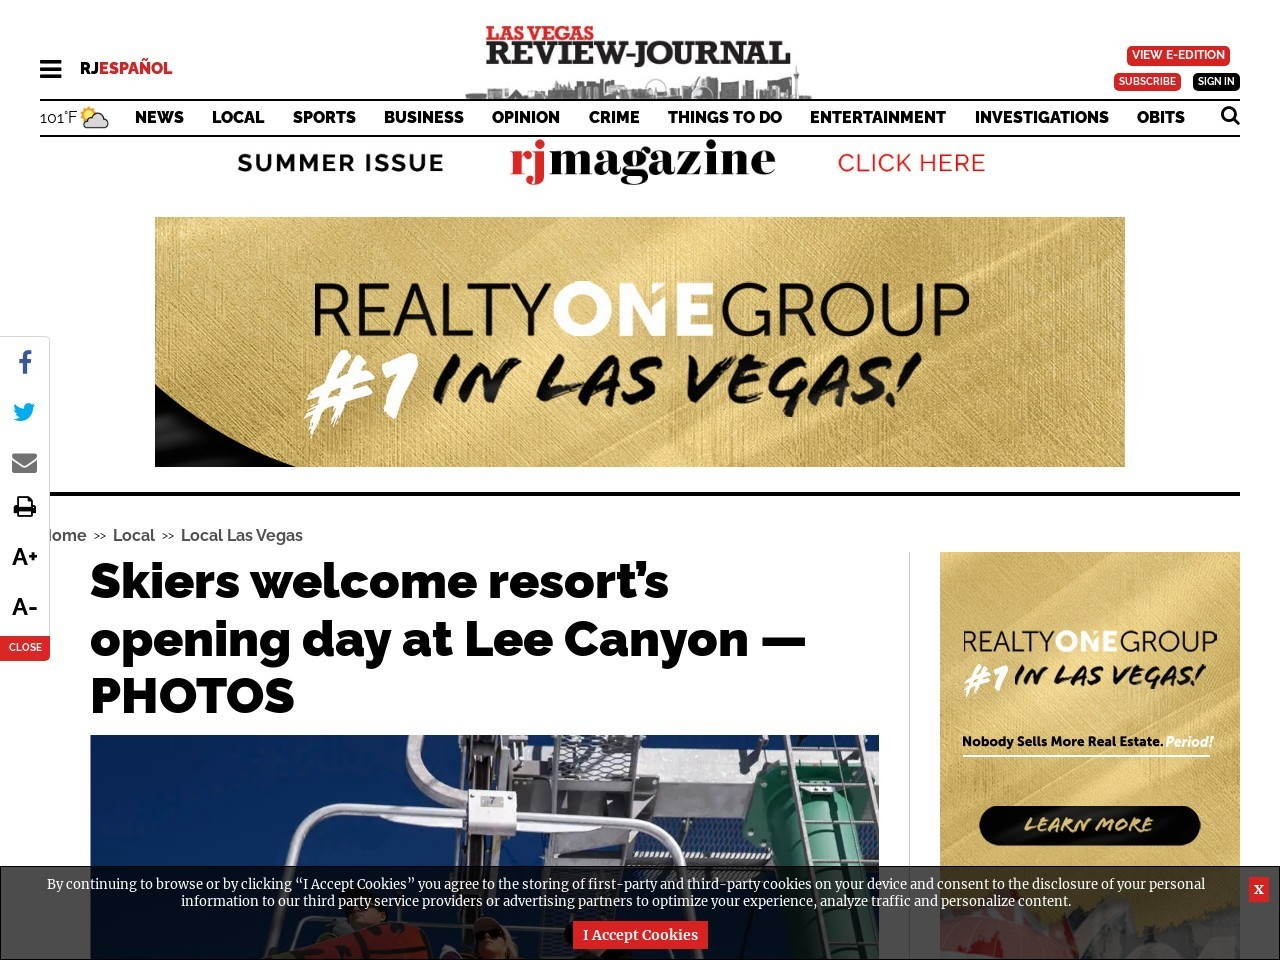 Skiers welcome resort's opening day at Lee Canyon — PHOTOS